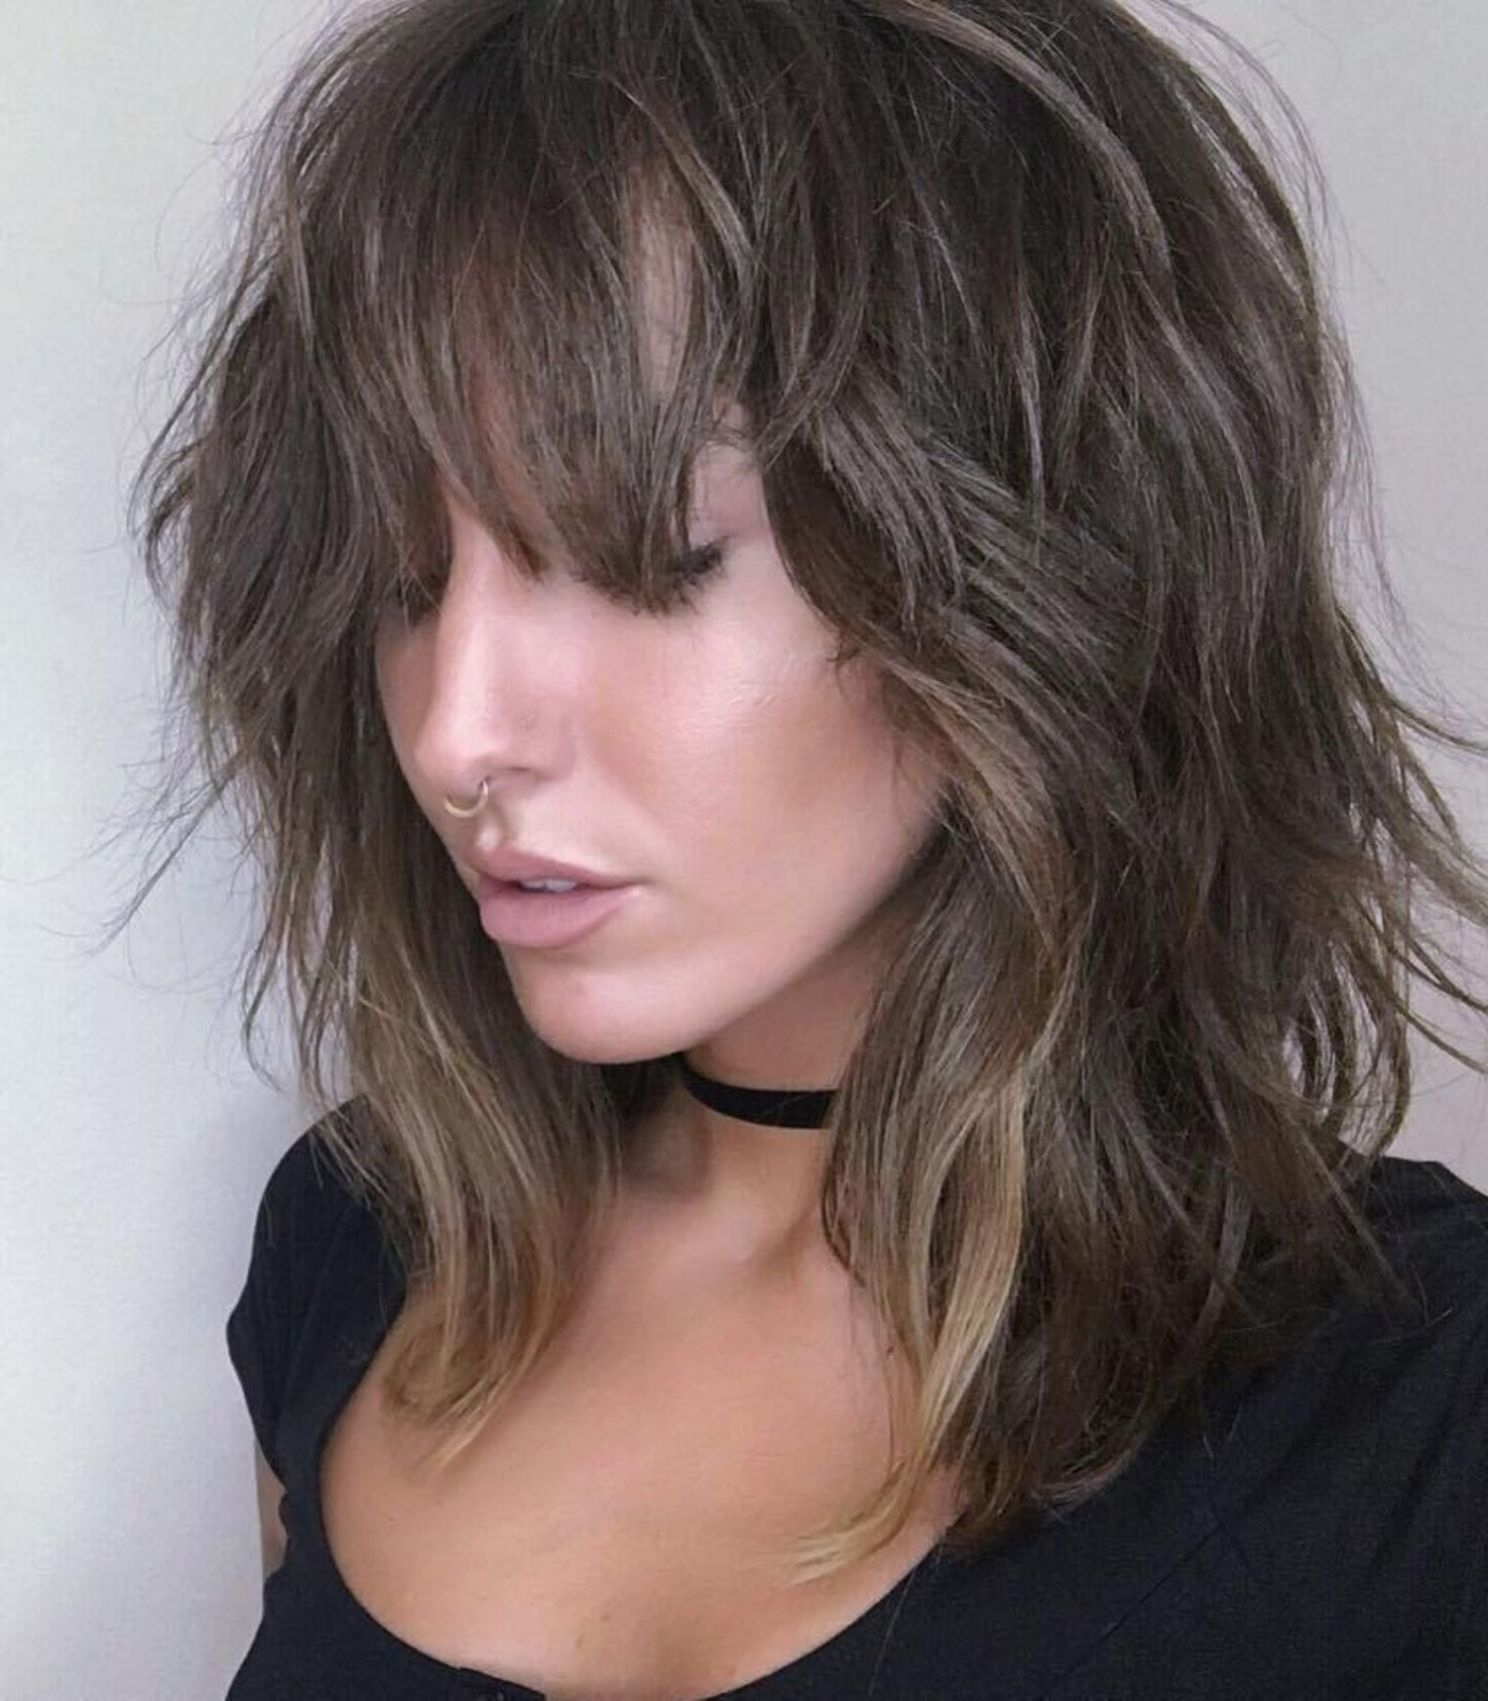 Pin On Haircuts&styles Throughout 2019 Razored Wavy Shag Haircuts With Light Bangs (View 2 of 20)